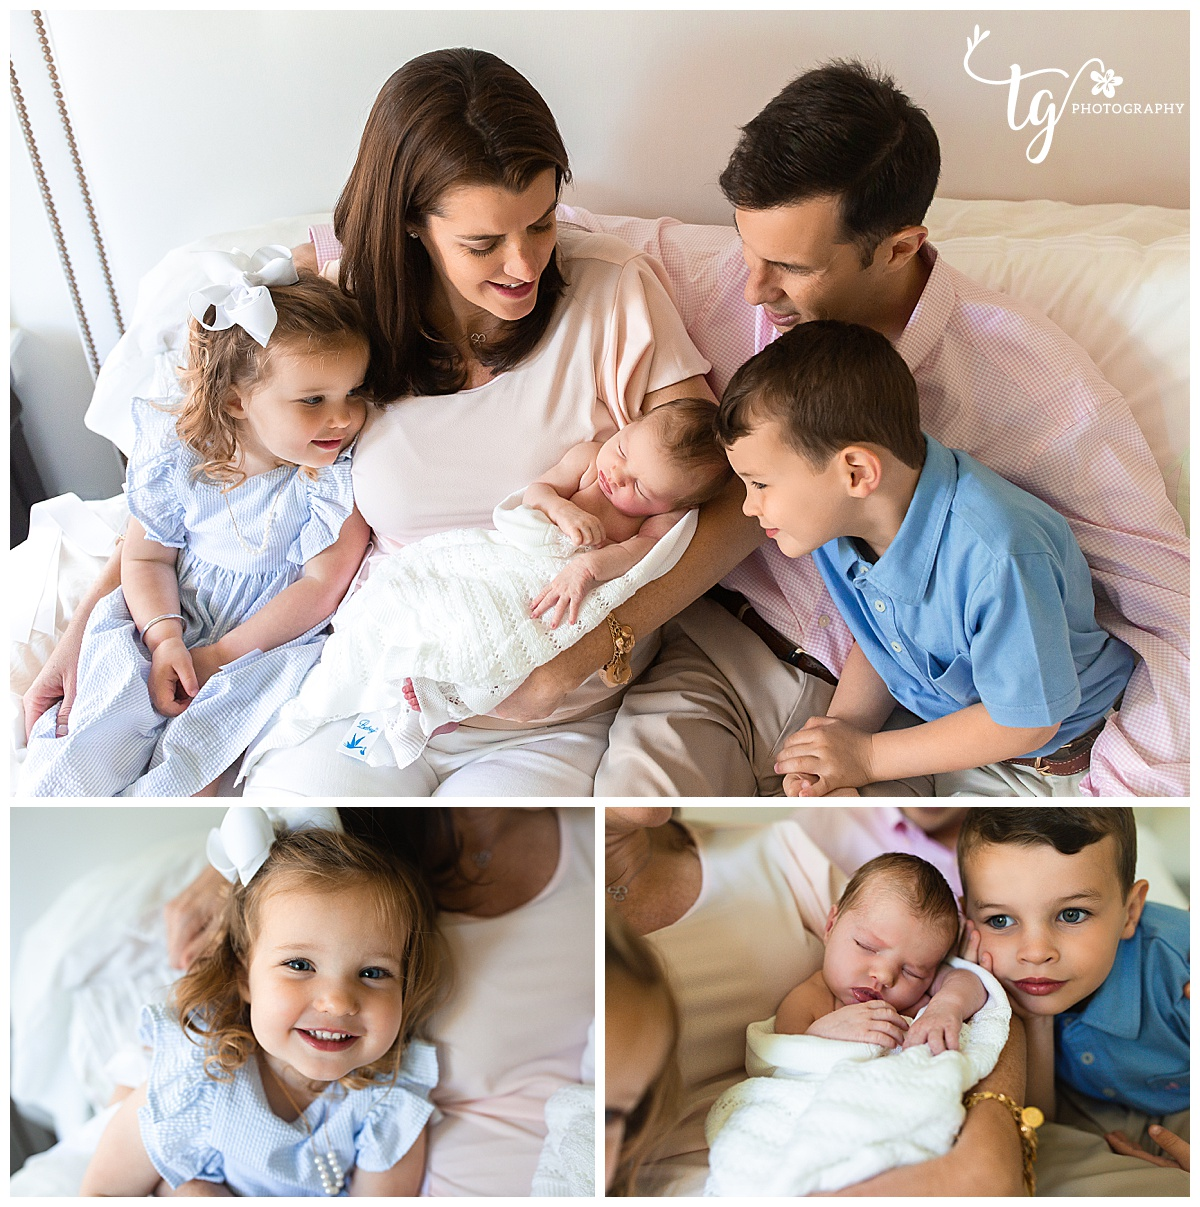 2019-05-27_0004.jpgfamily  sitting on bed looking at newborn baby and smiling